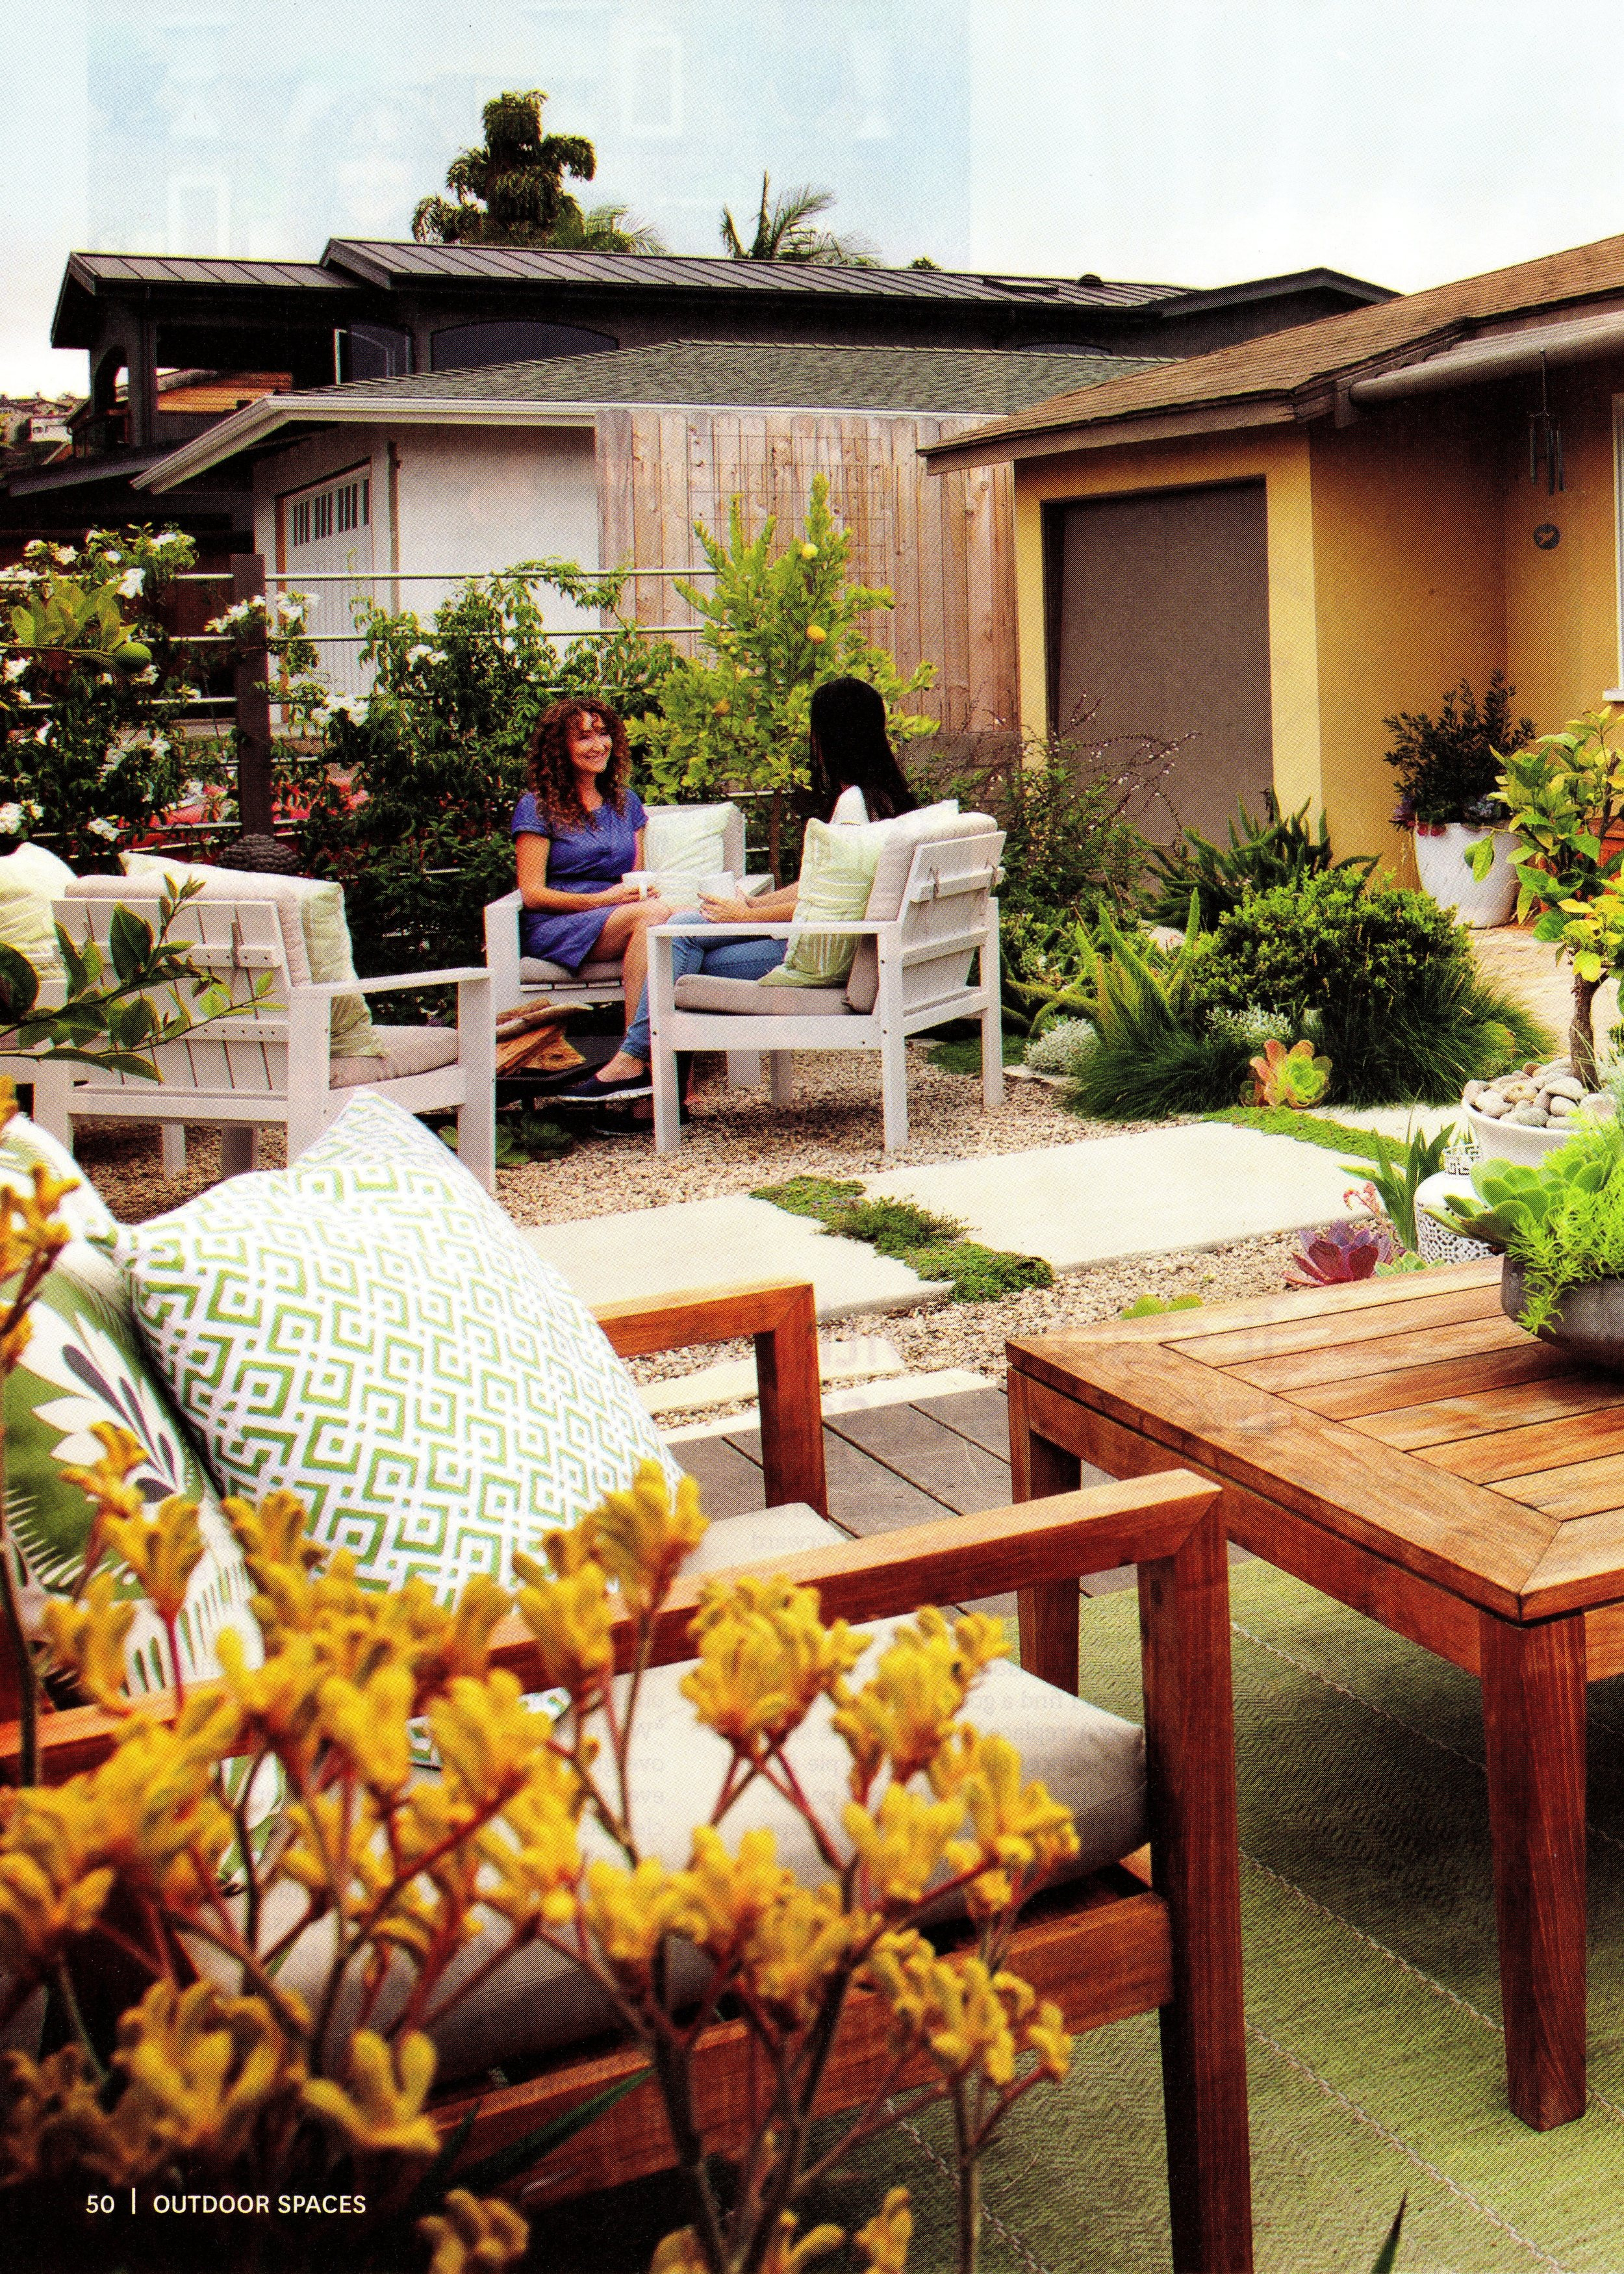 Outdoor Spaces_page 320160320_17371105.jpg